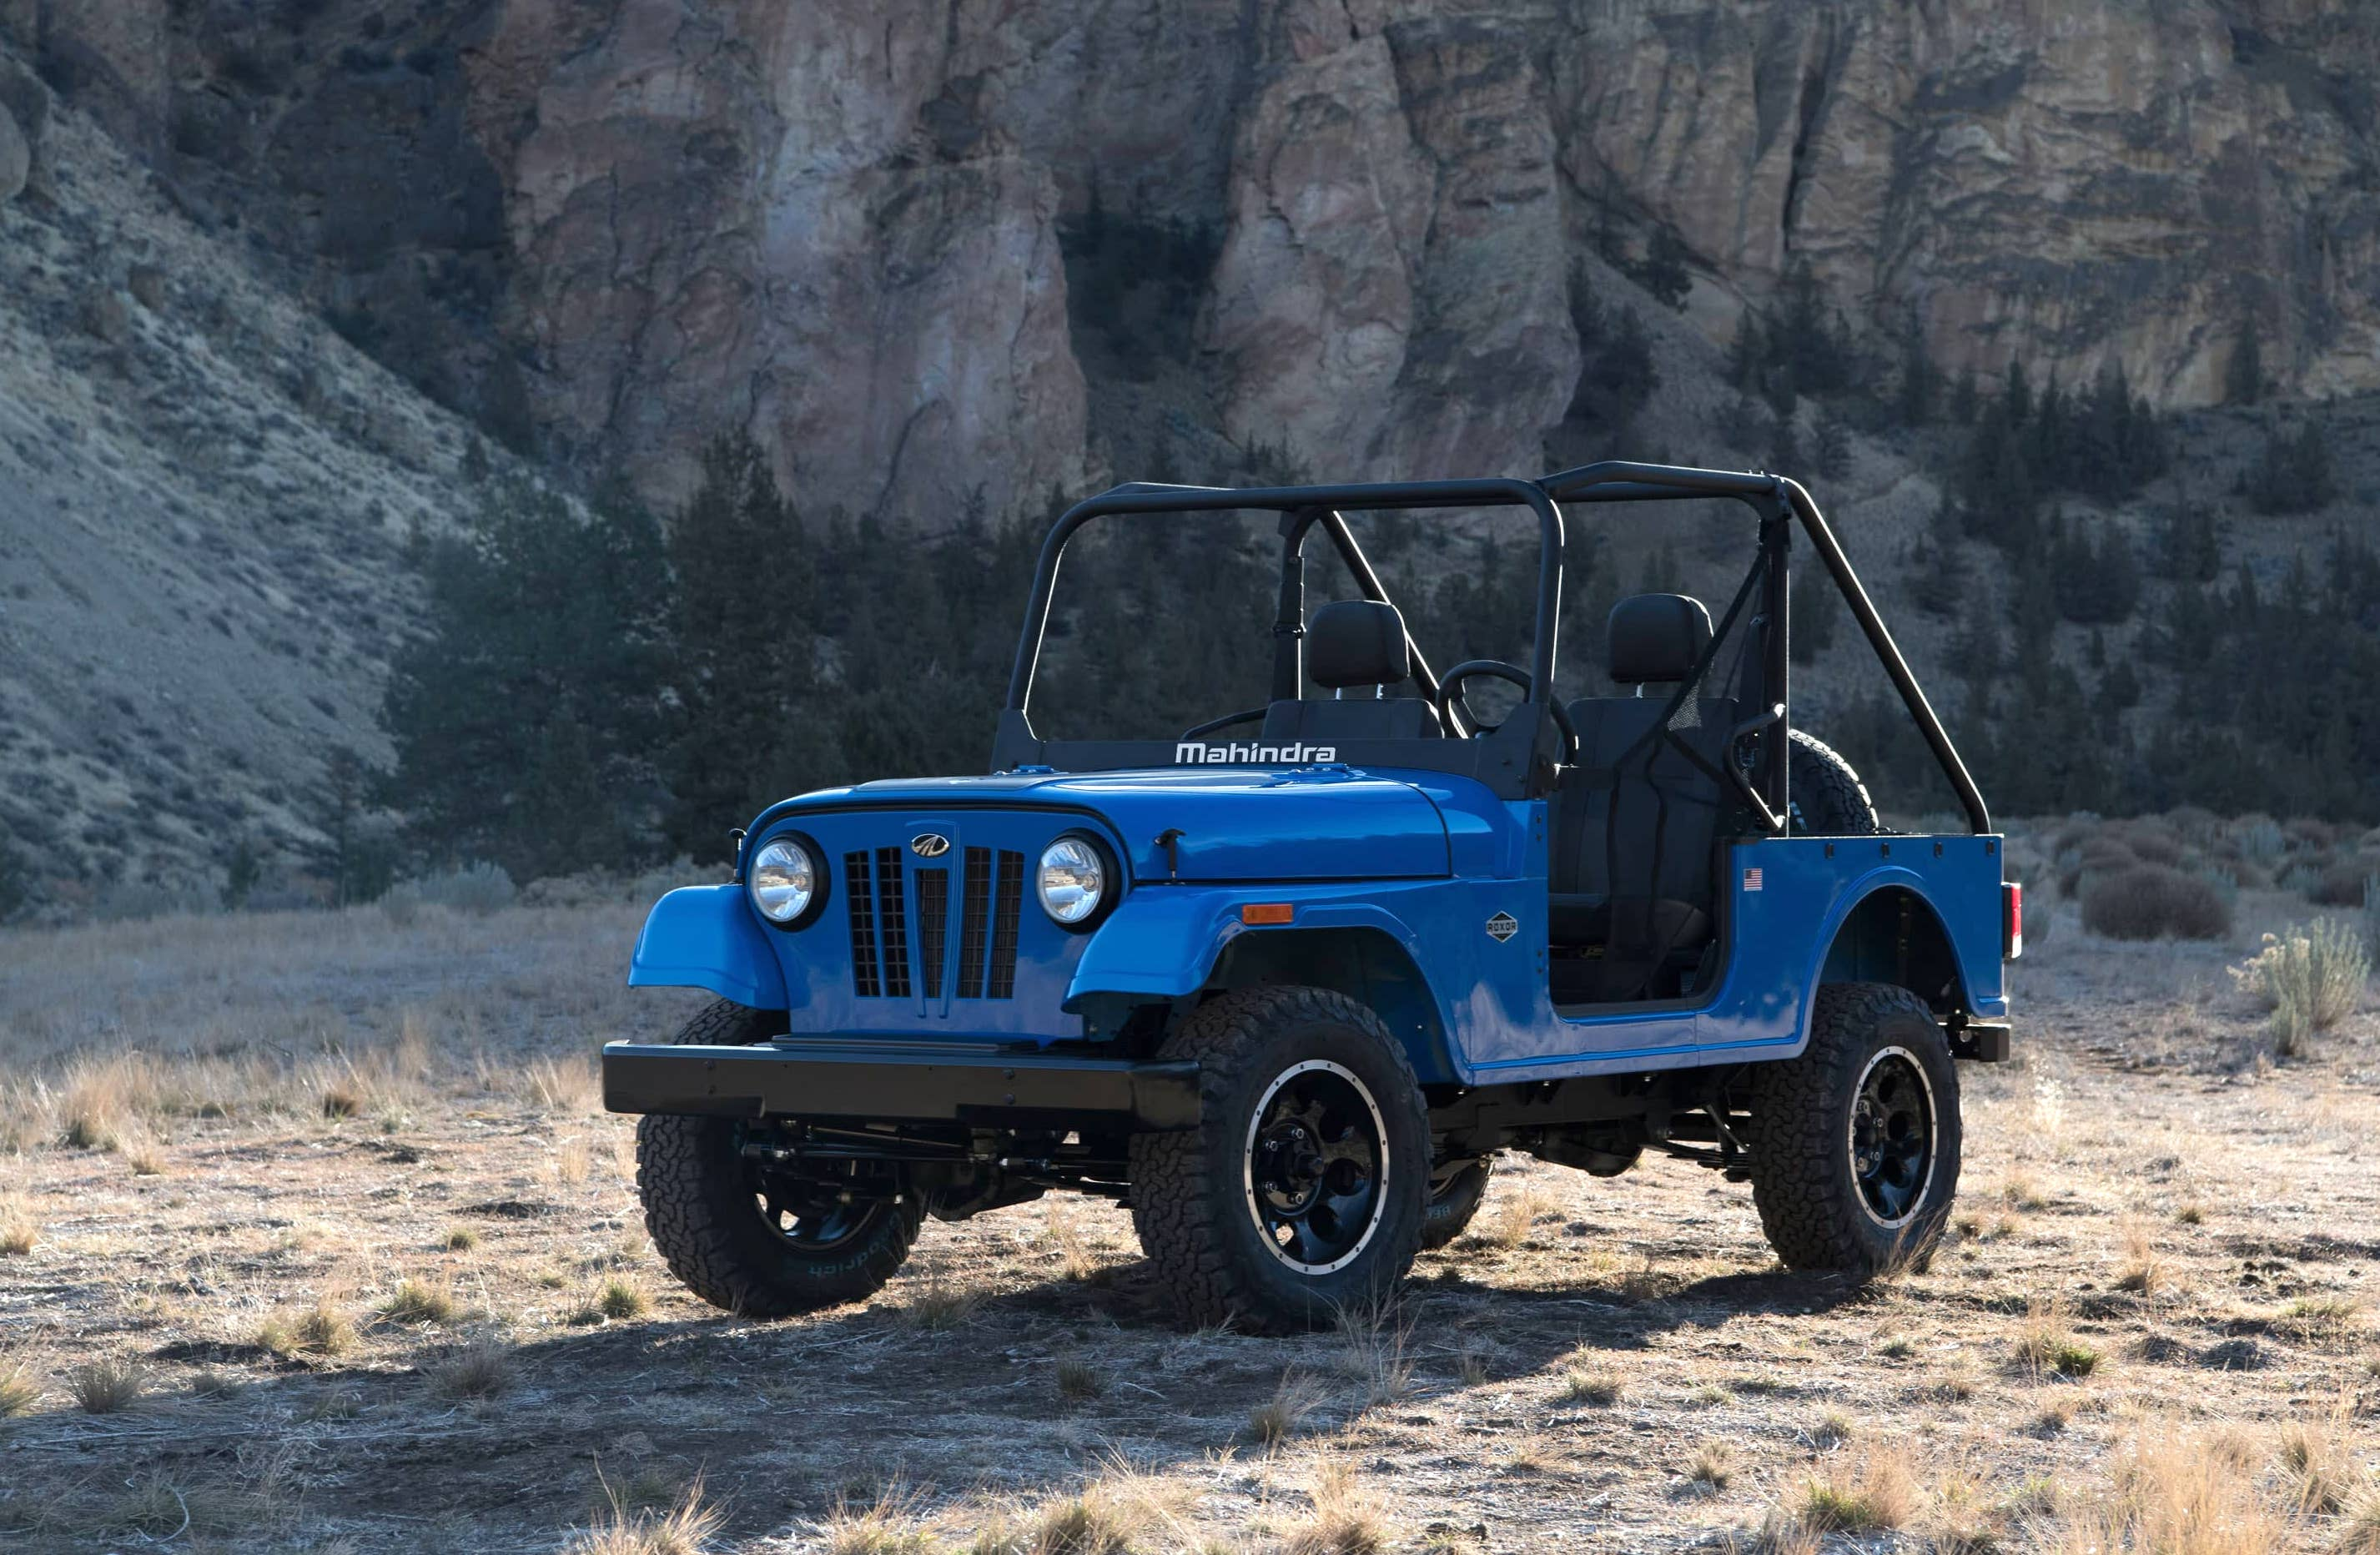 This Mahindra Roxor is a modern Willys with just one downside